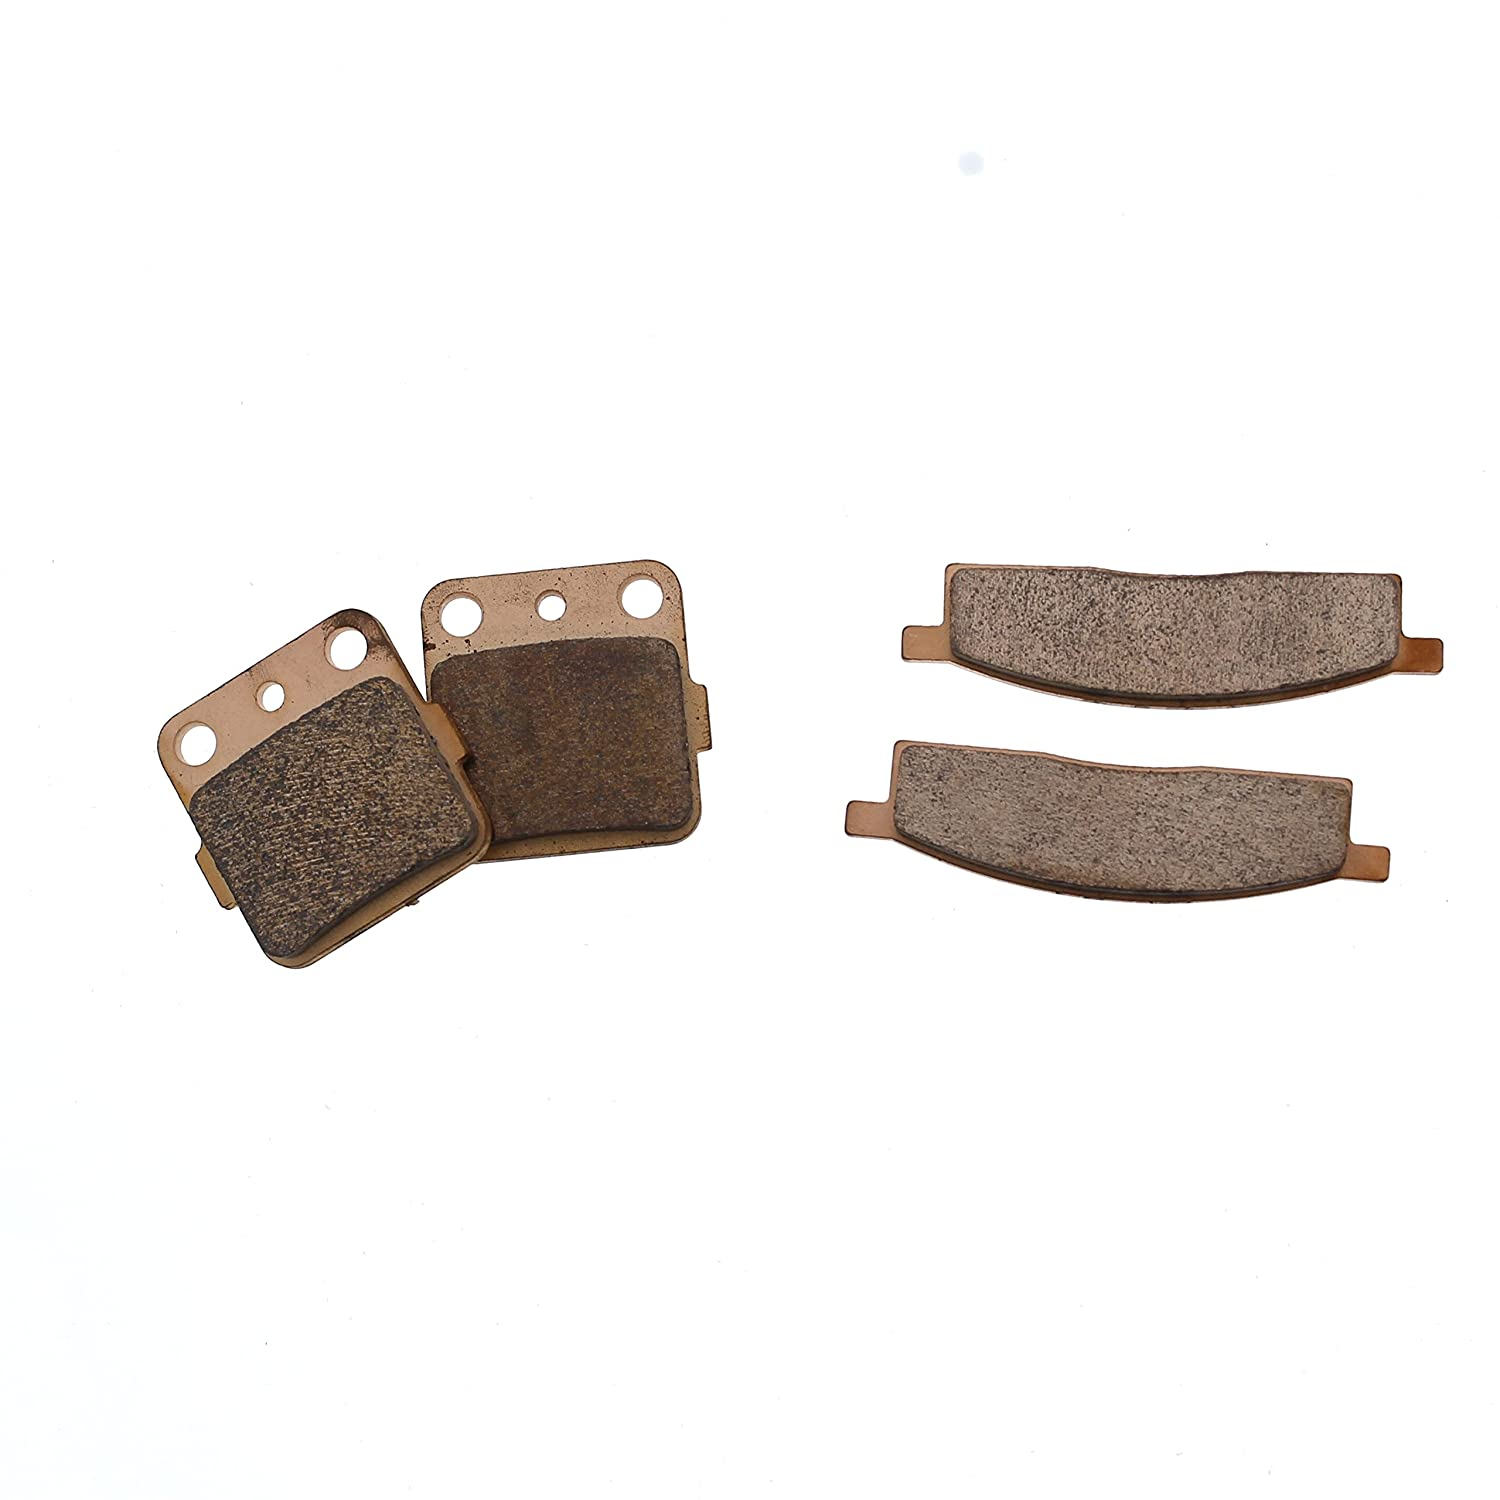 Brake Pads for Yamaha YZ450F 2003-2017 Rear Severe Duty Brakes by Race-Driven